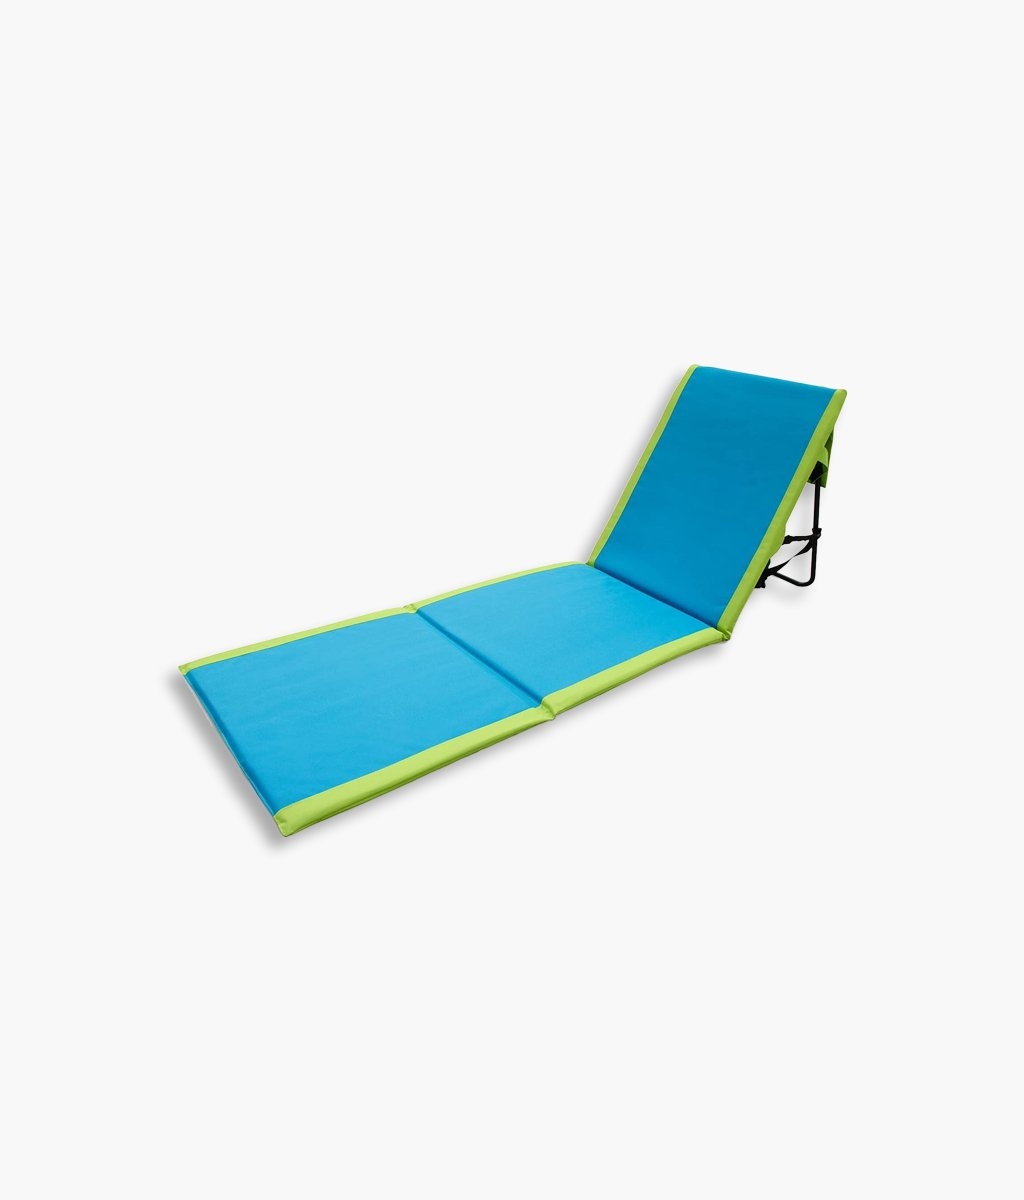 China Wholesale Elastic Belt Exporters –  Portable Beach Mat & Chair – Kinghow